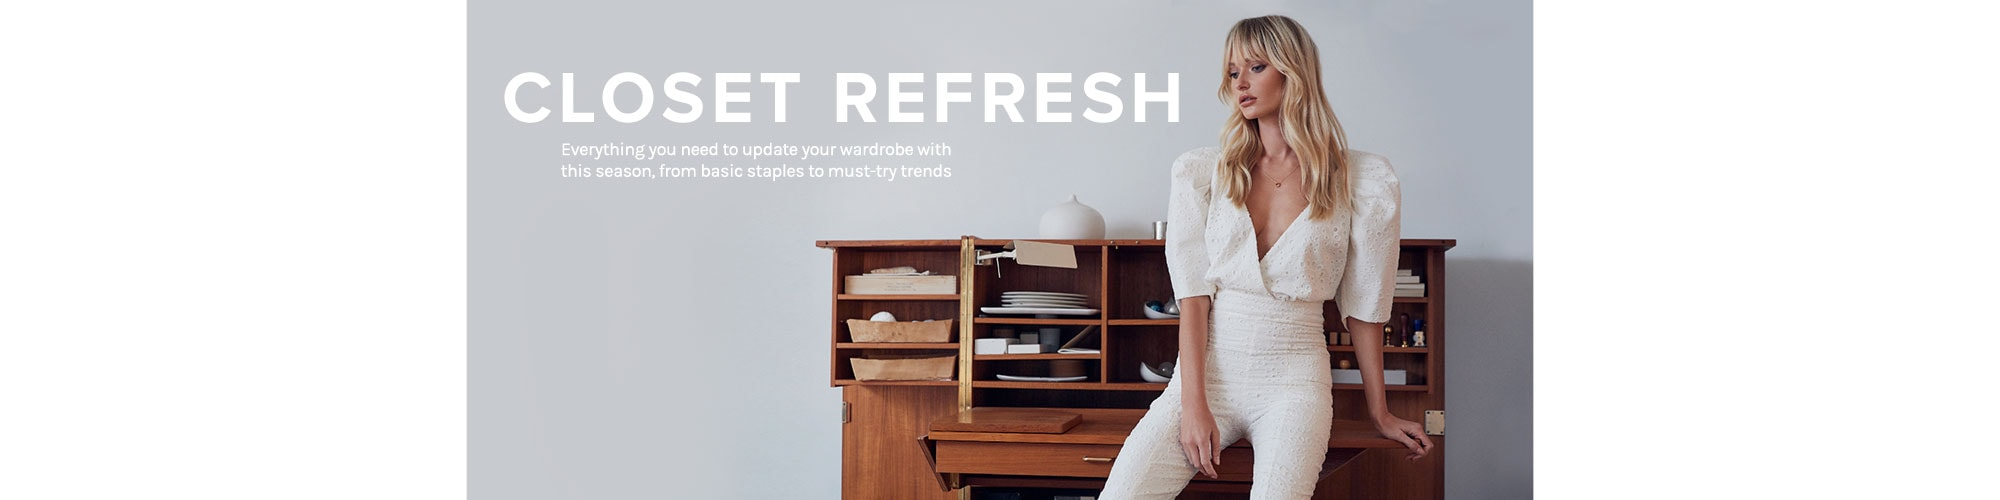 Closet Refresh. Everything you need to update your wardrobe with this season, from basic staples to must-try trends. SHOP THE EDIT